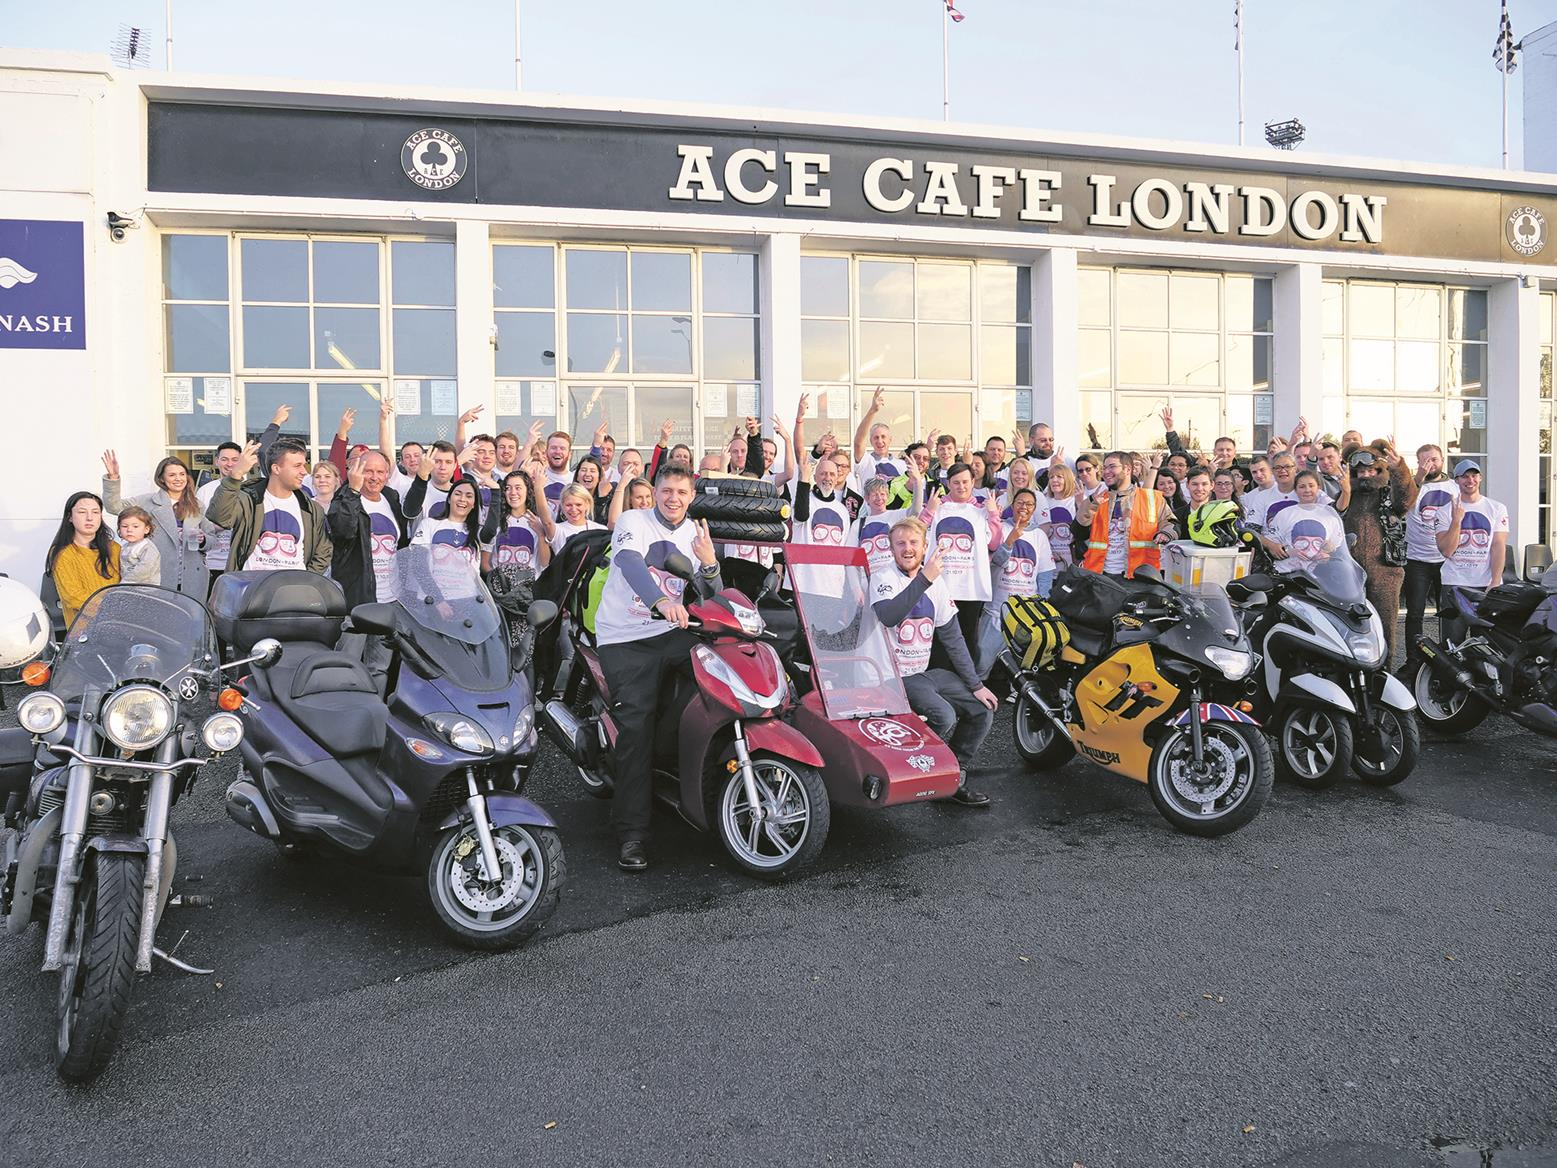 The adventurers set off from Ace Cafe London